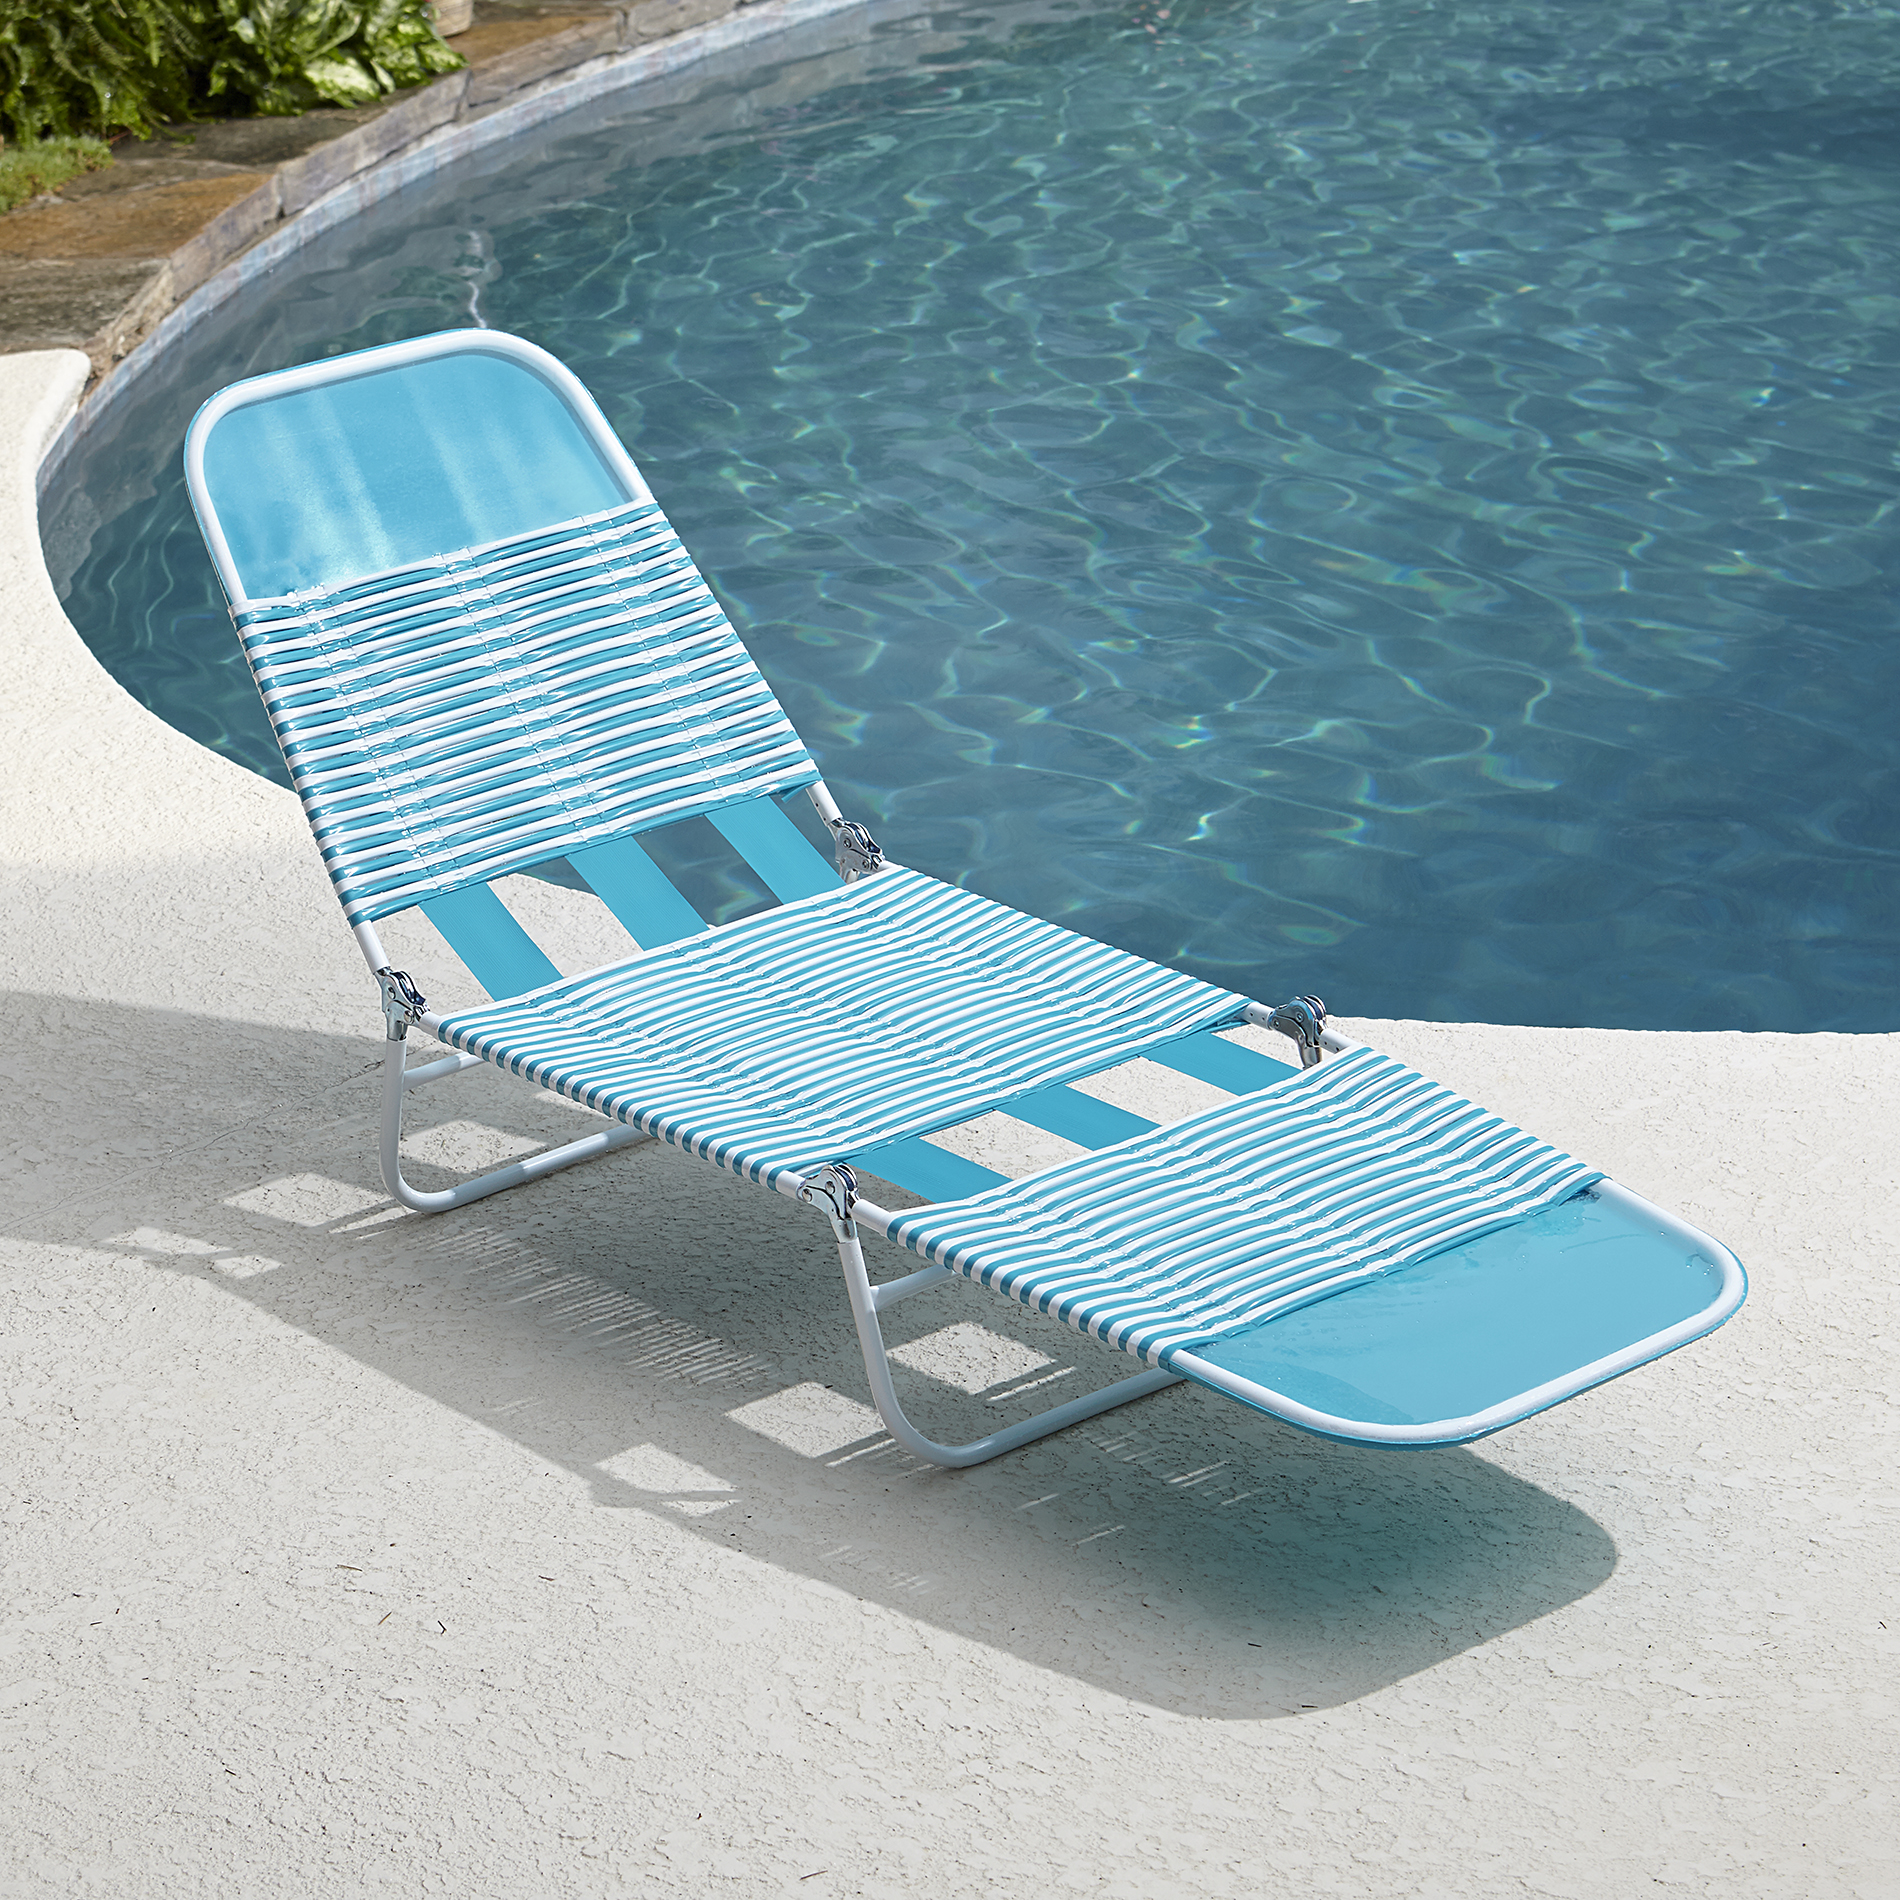 Pvc Chaise Lounge- Blue - Outdoor Living Patio Furniture